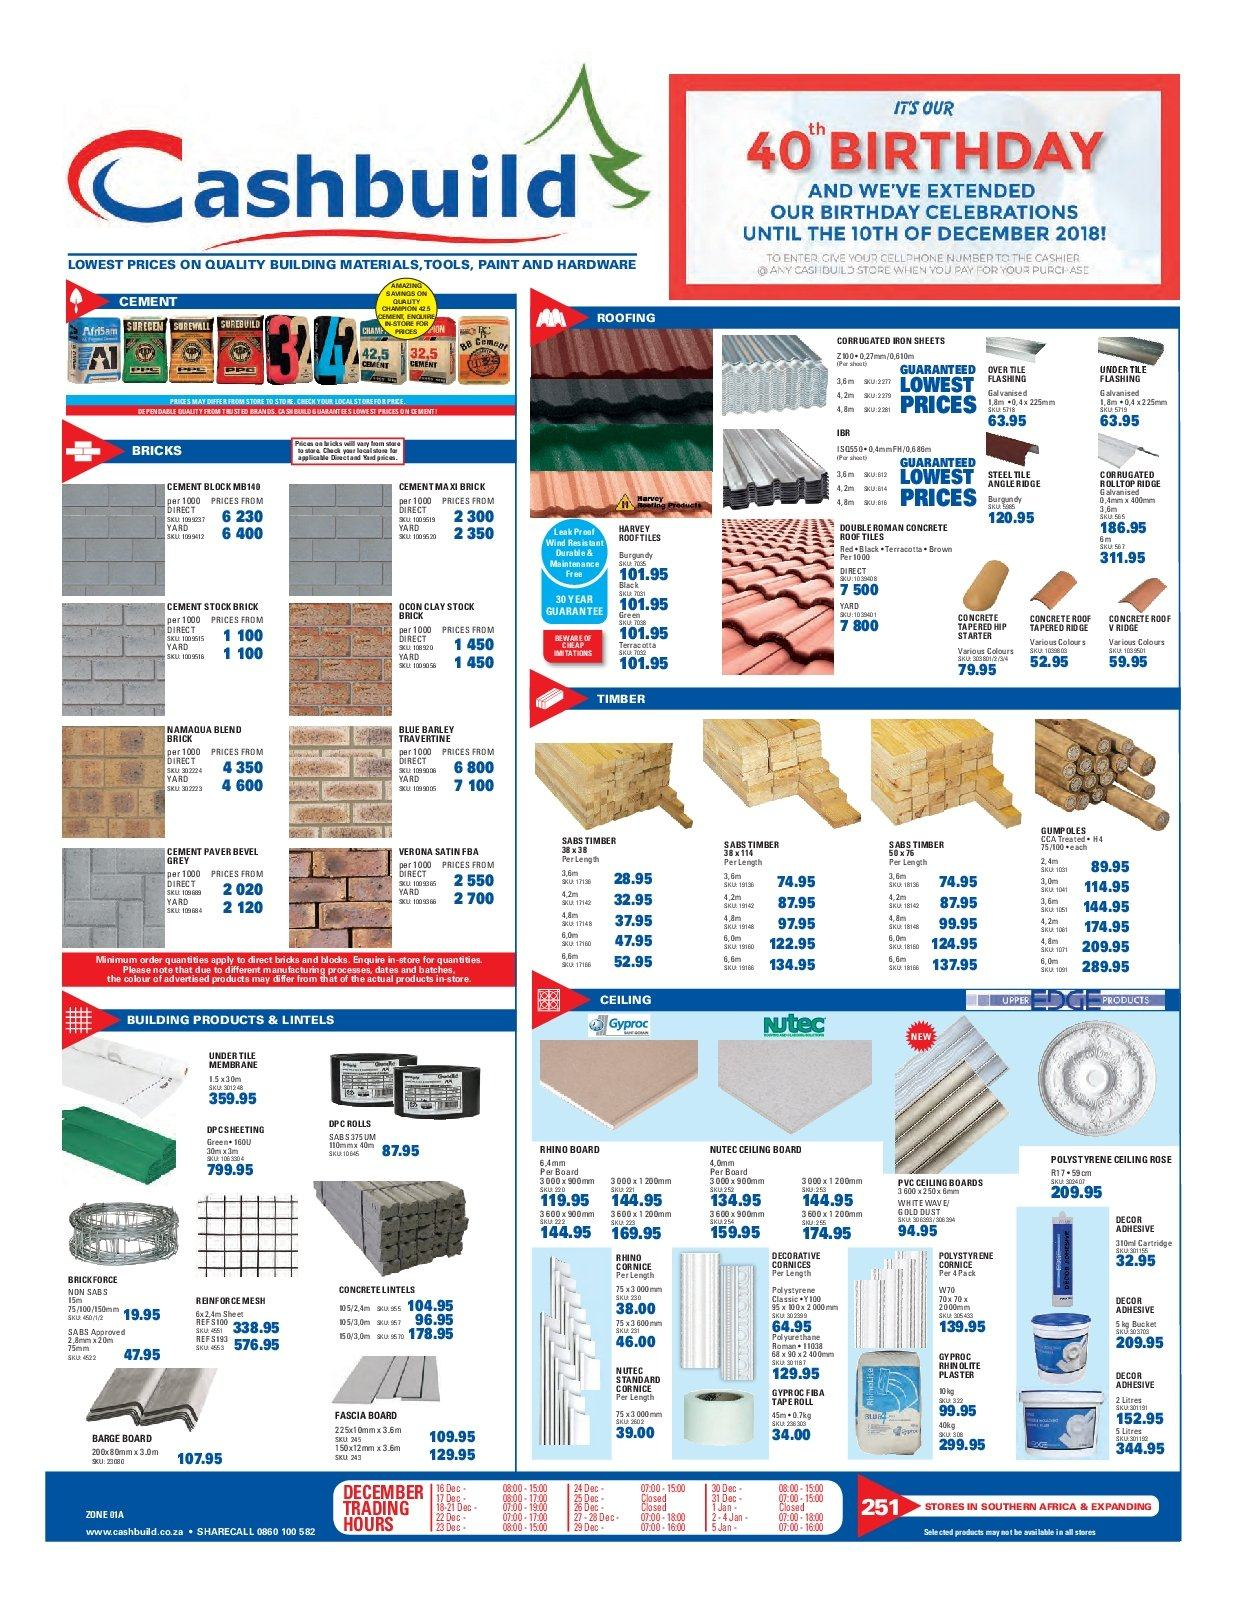 Cashbuild Catalogue 12 03 2018 01 20 2019 My Catalogue